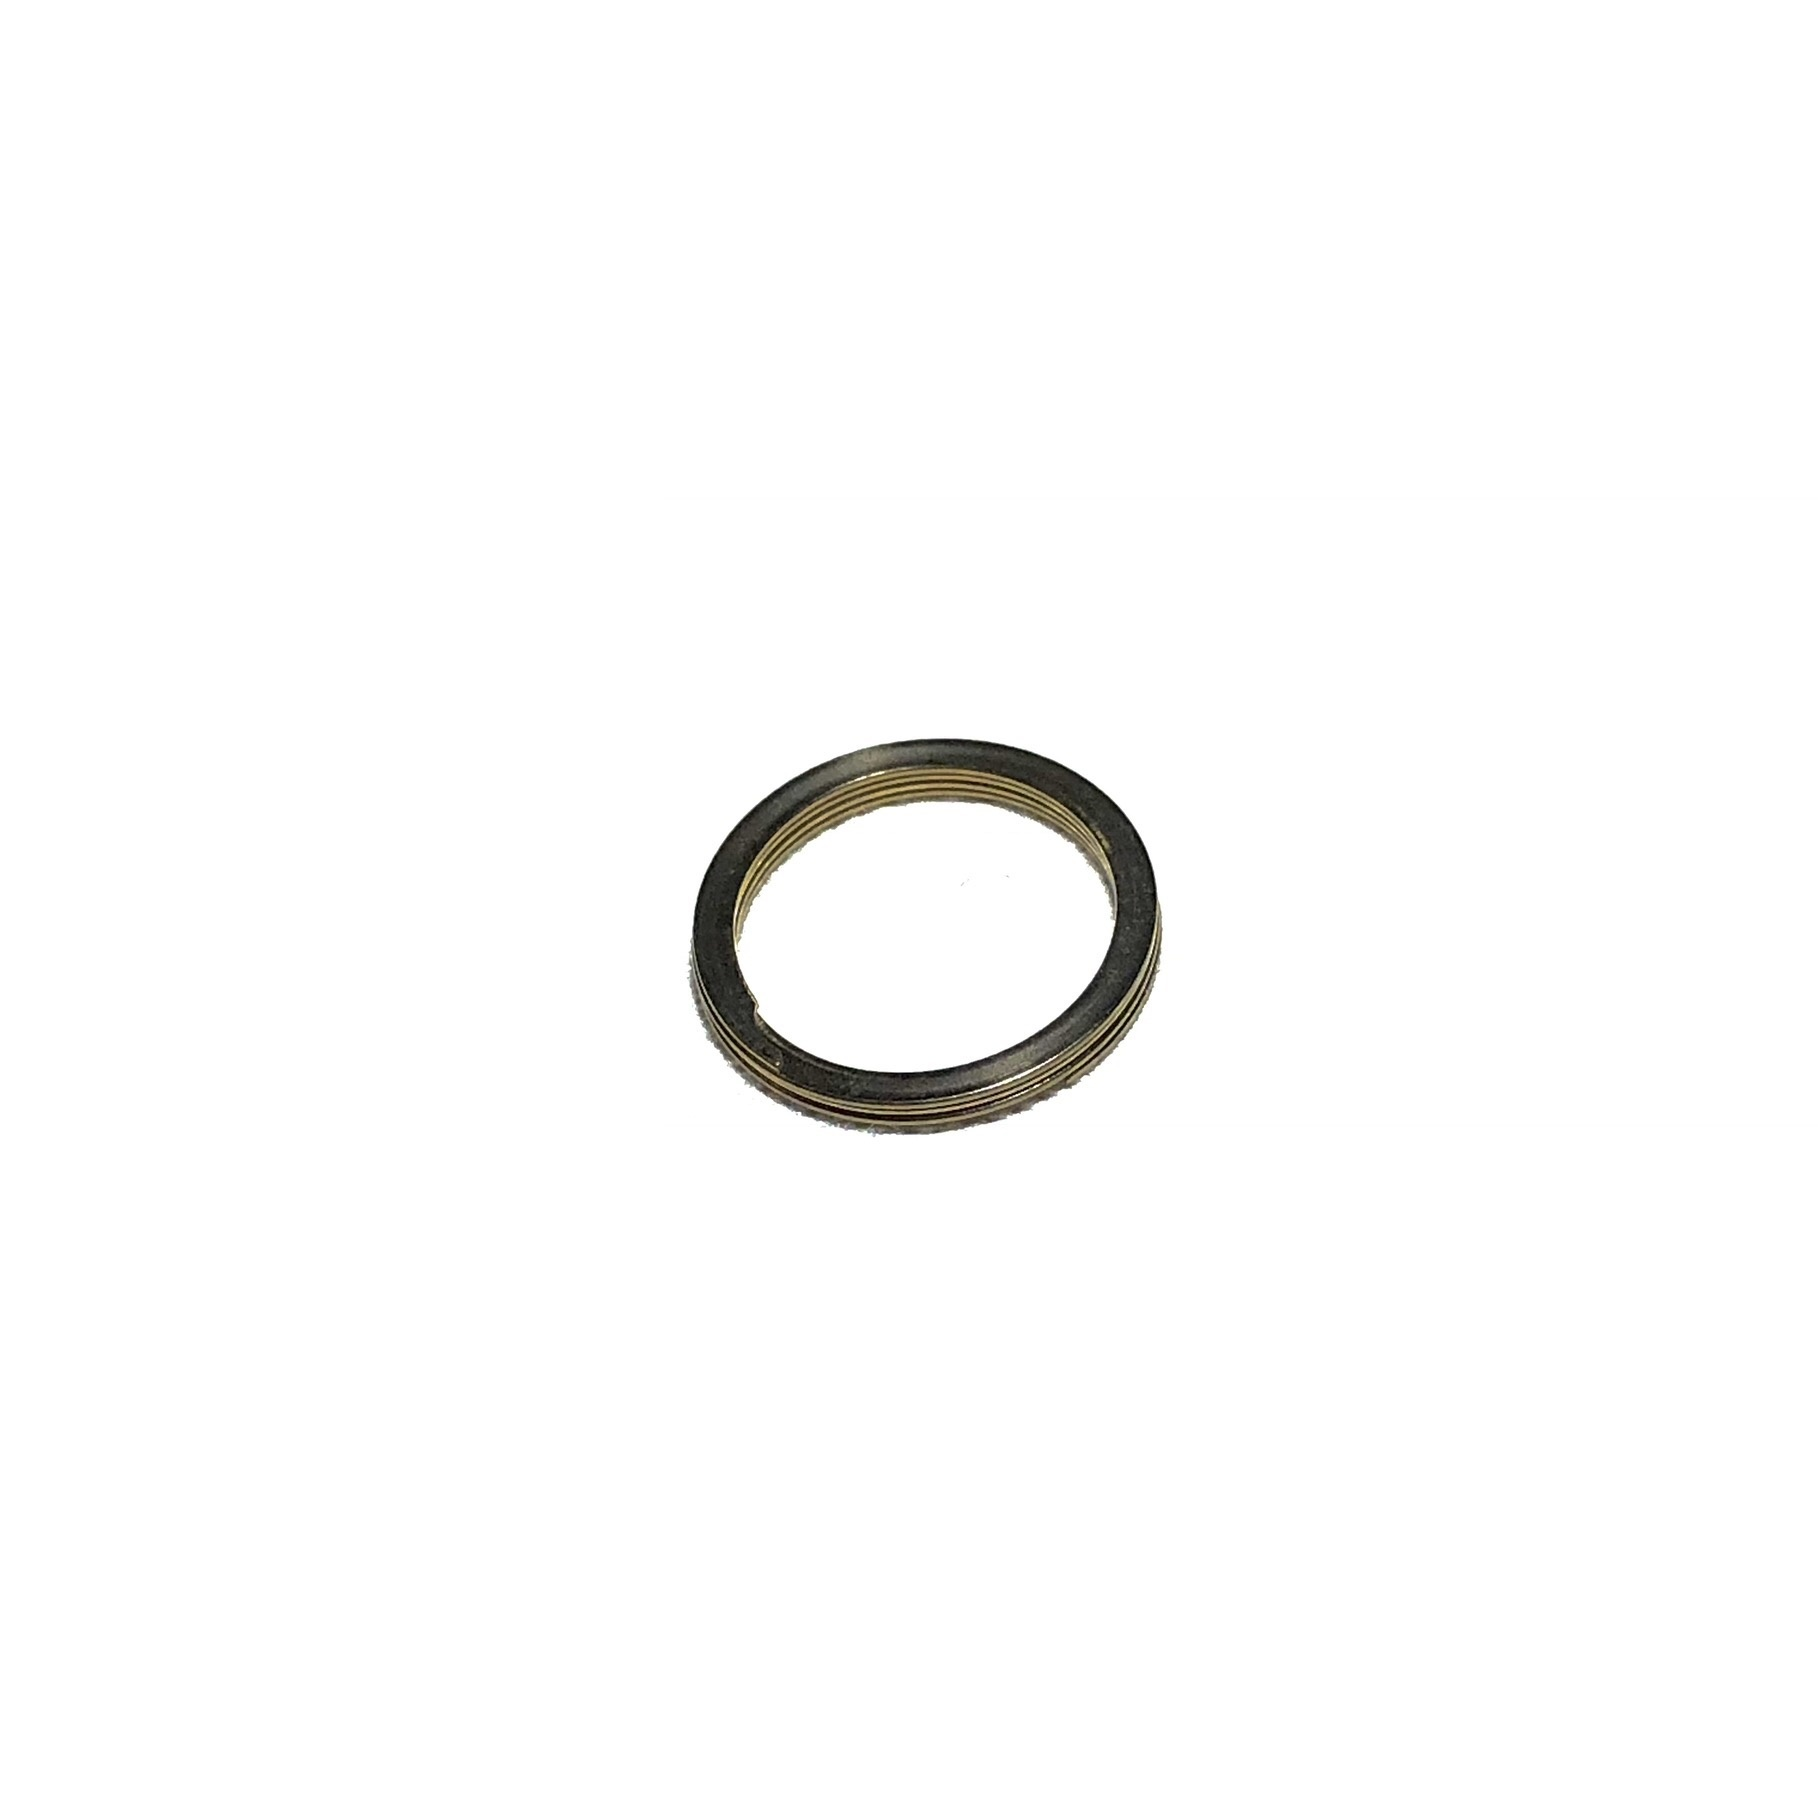 BLACK LABEL ARMORY ONE-PIECE HELICAL GAS RING